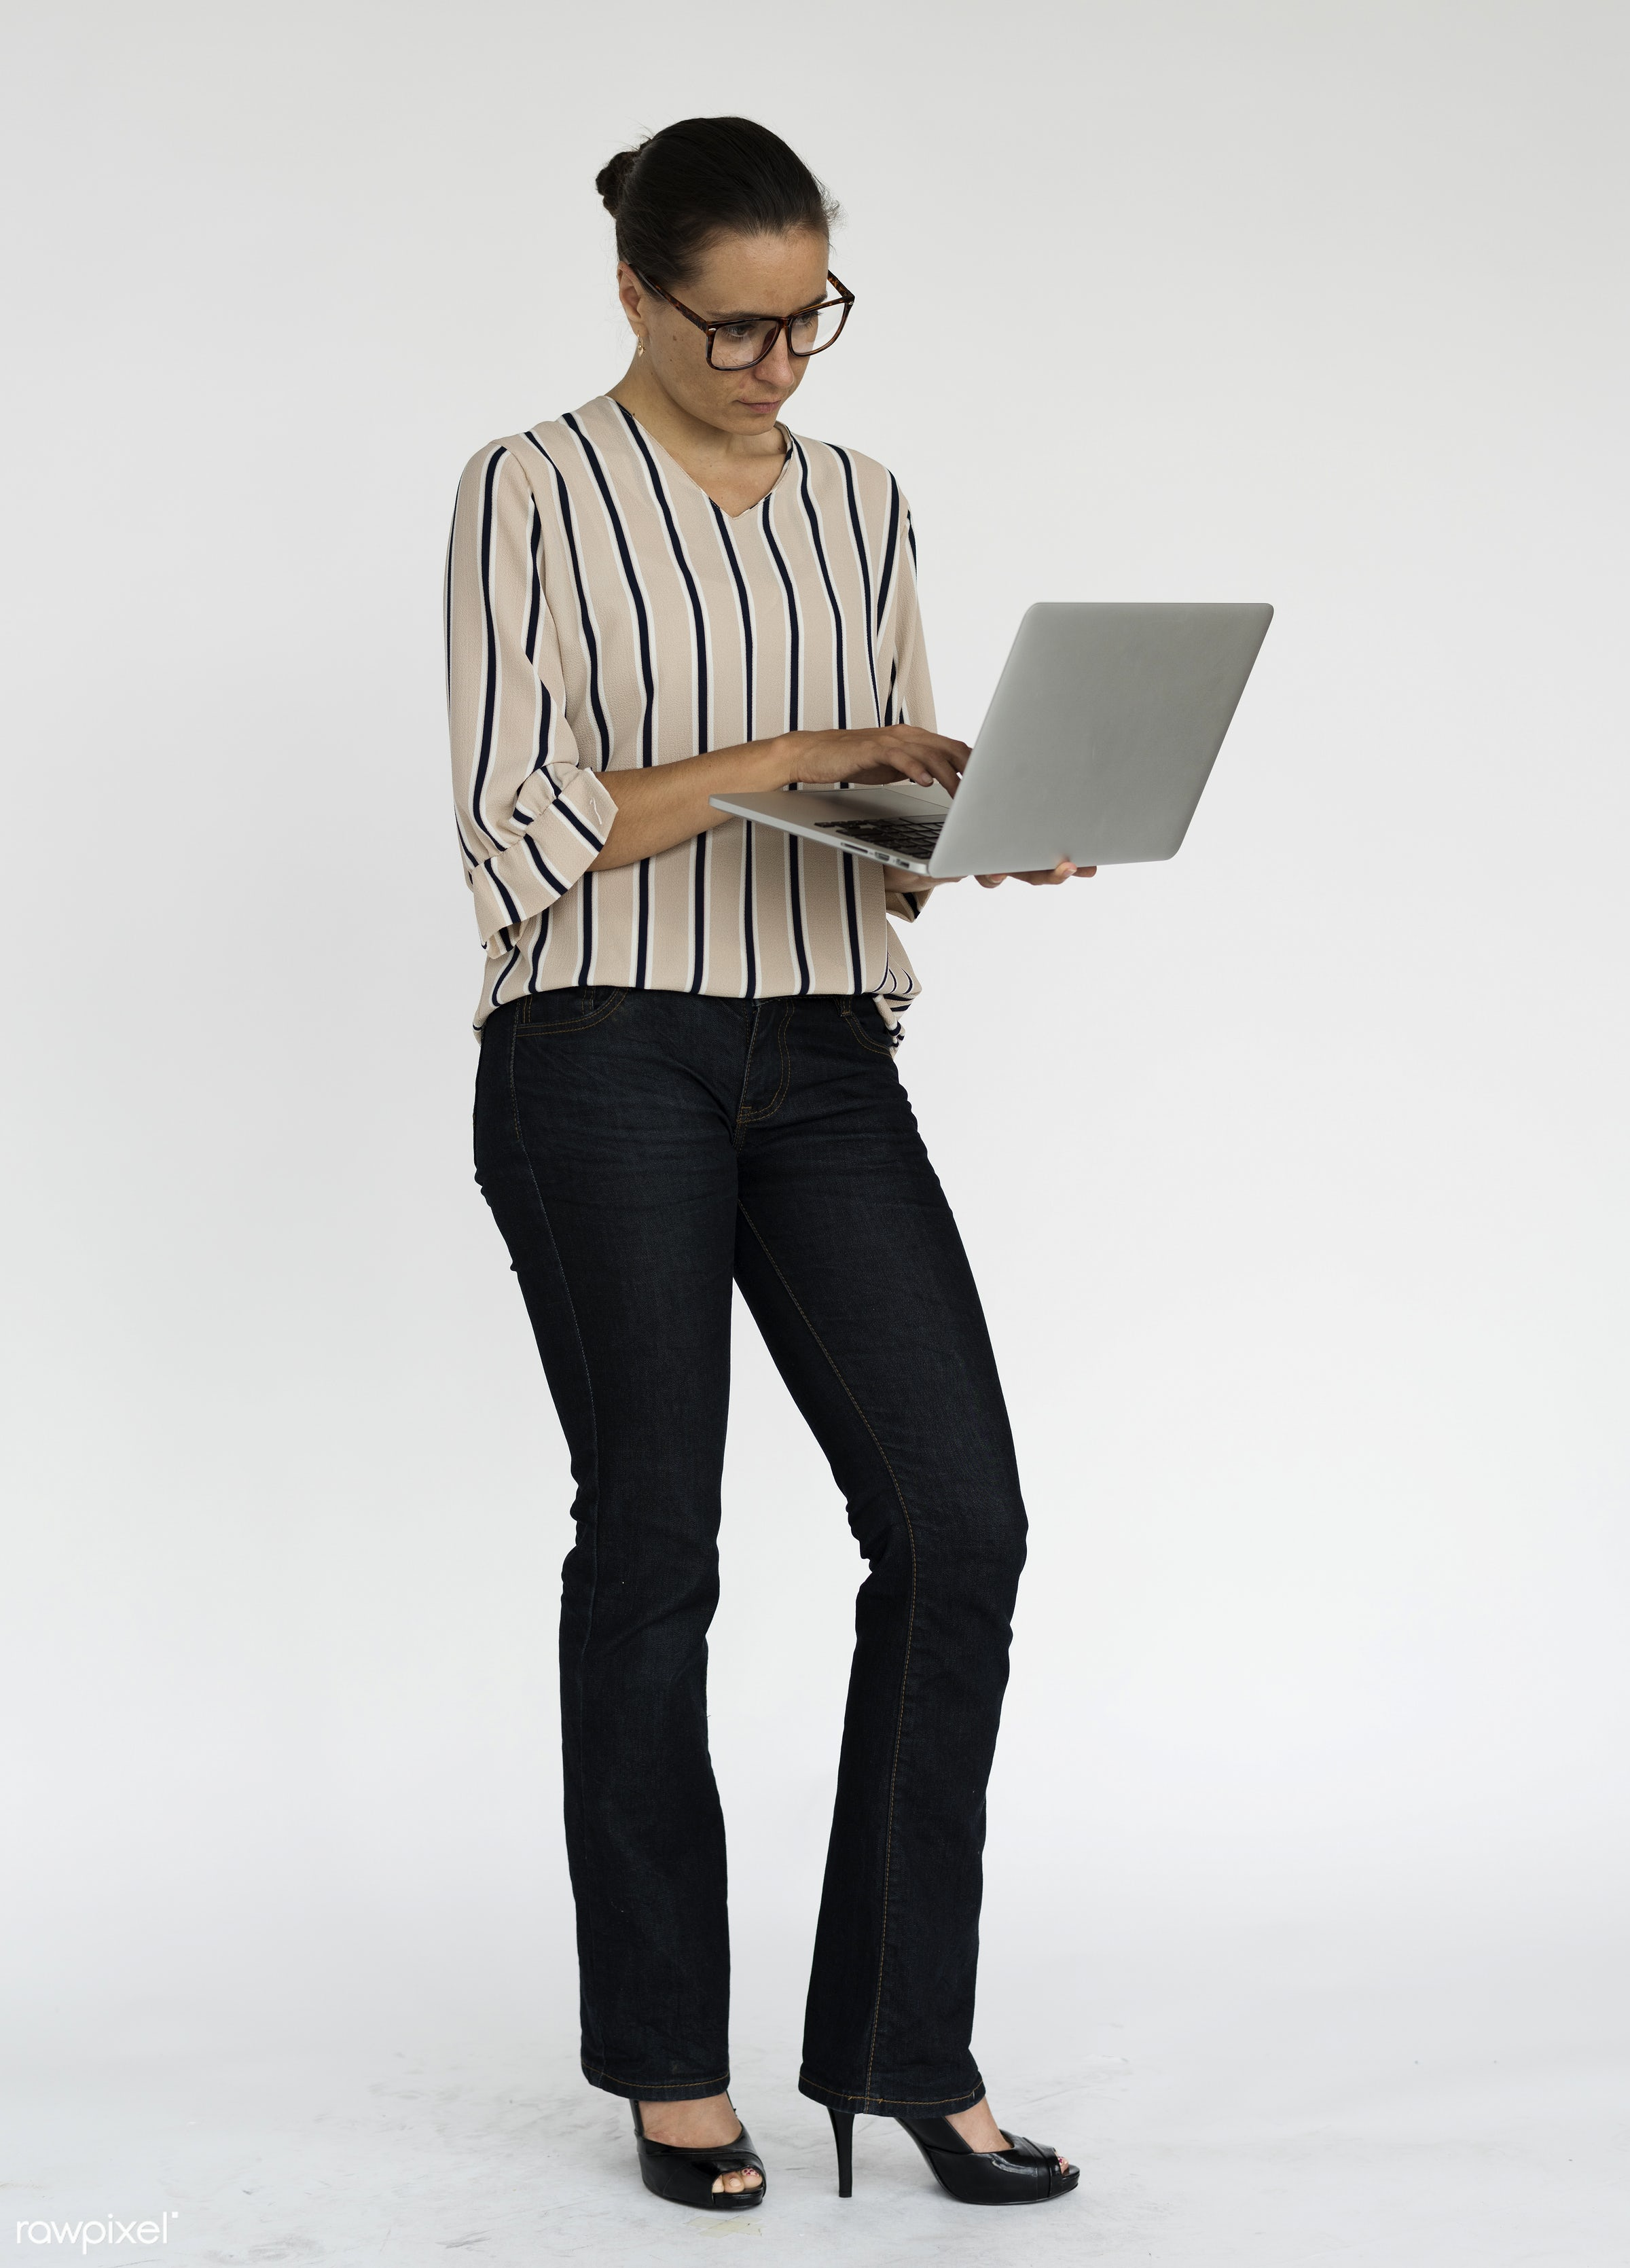 studio, expression, using, person, technology, holding, people, caucasian, woman, lifestyle, laptop, positive, serious,...